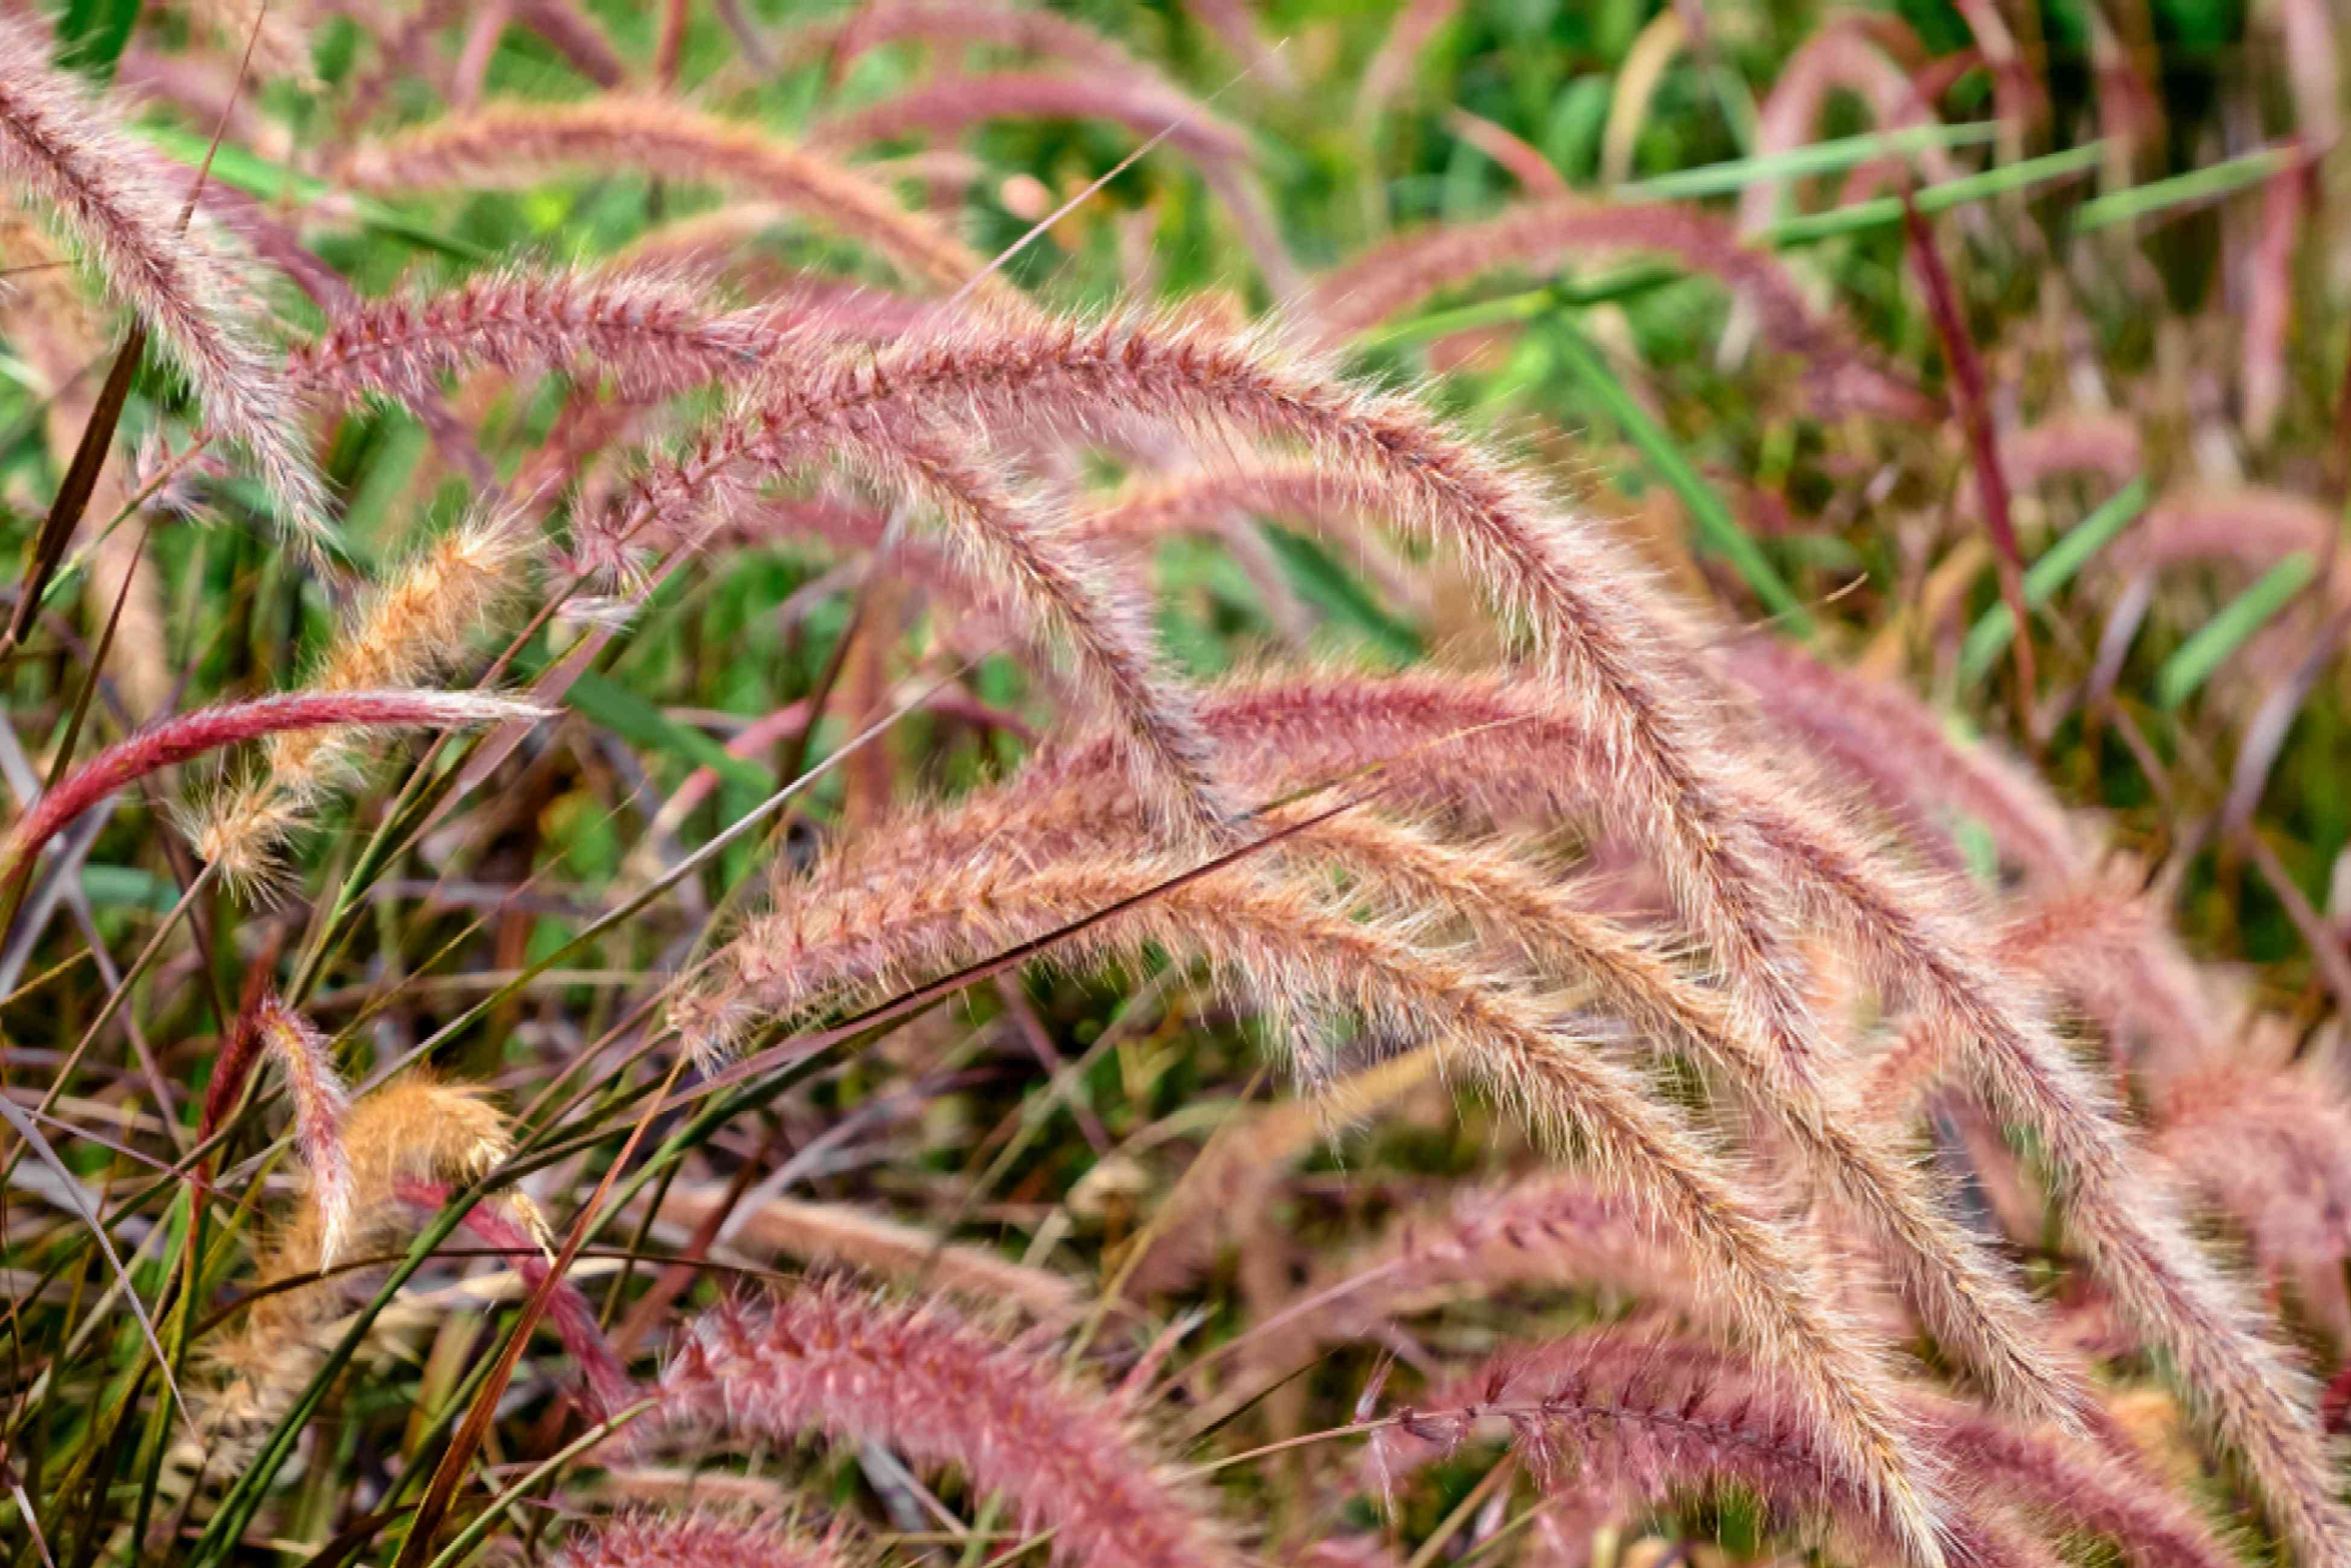 Ornamental grass with clump forming pink plumes